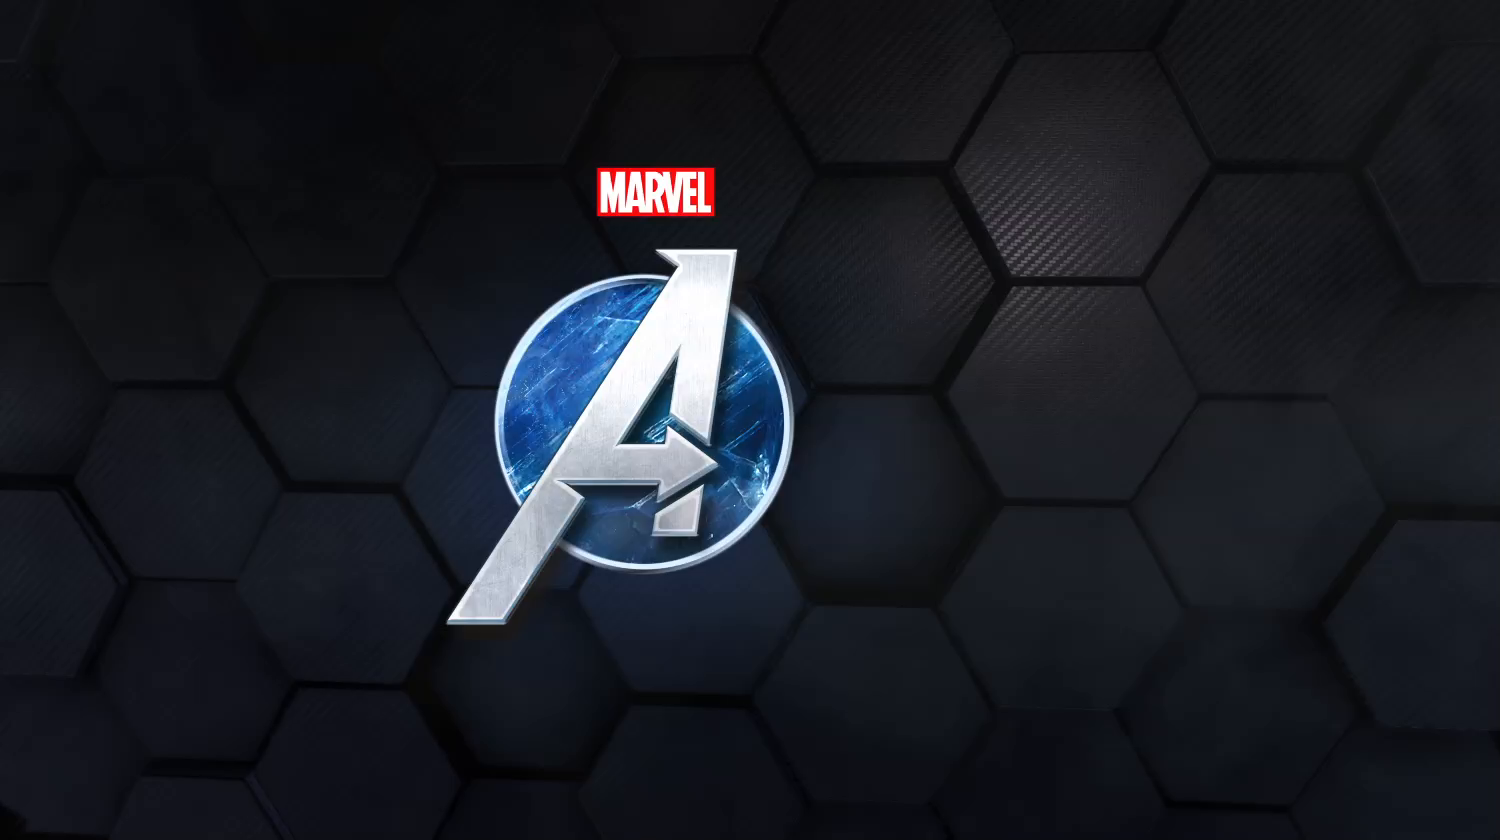 Amazon com: Marvel's Avengers - PlayStation 4: Square Enix